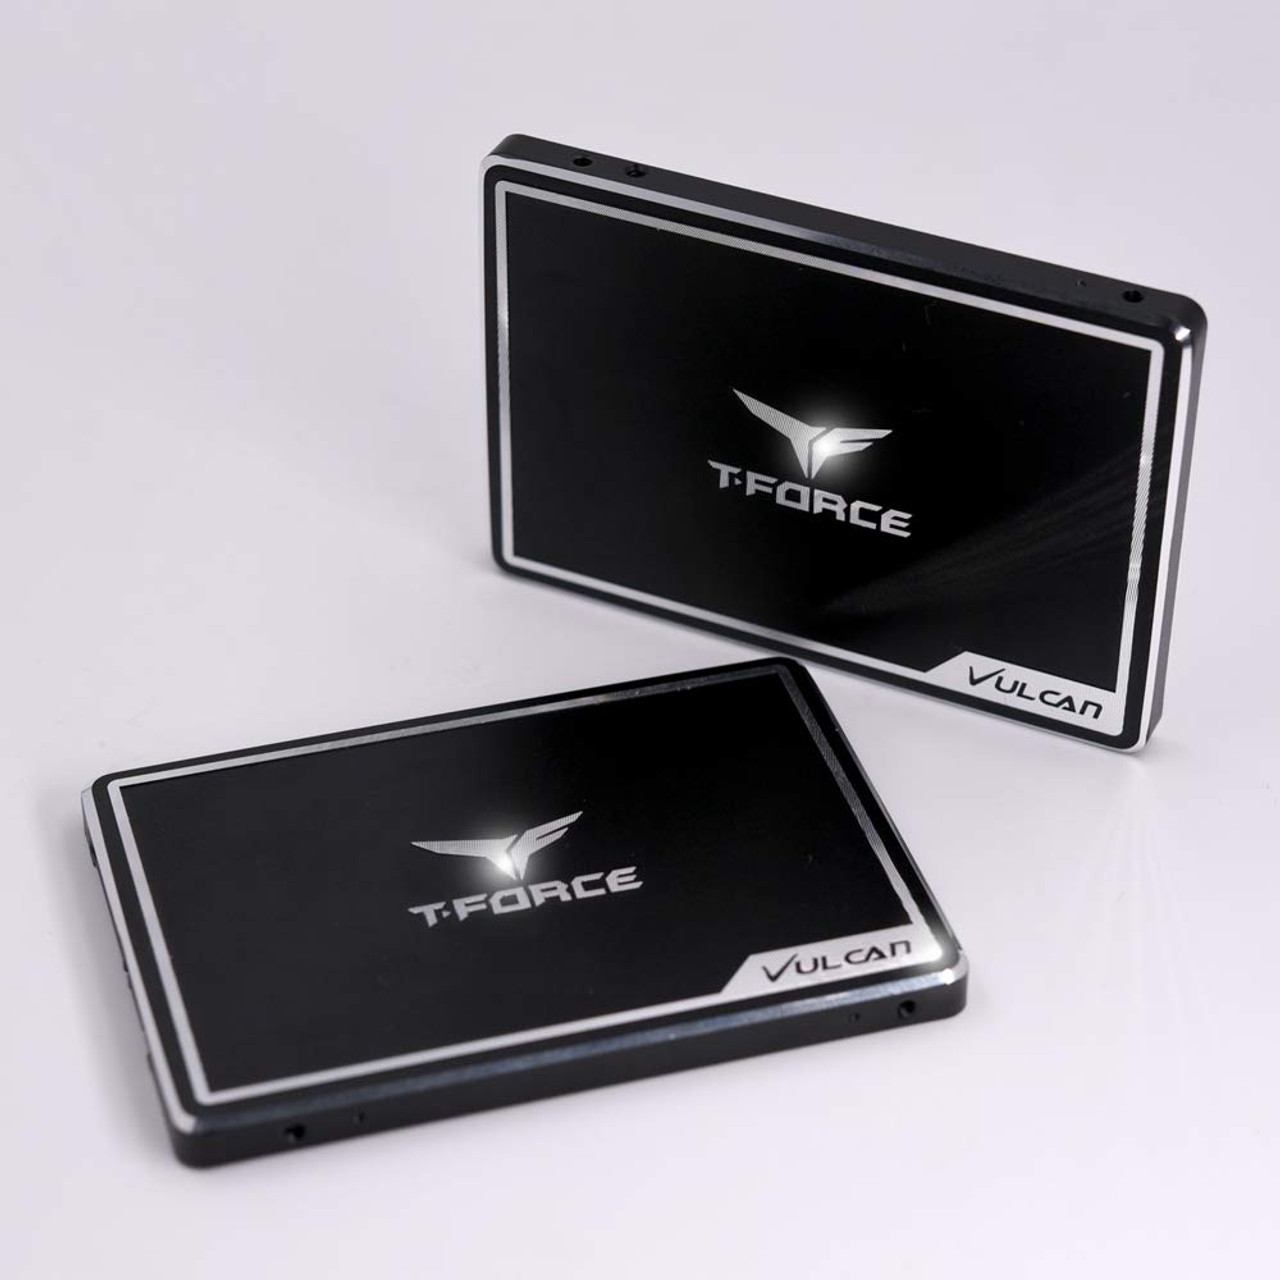 TEAMGRTEAMGROUP T-Force Vulcan 250GB 2.5 inch SATA III 3D NAND Internal Solid State Drive SSD - T253TV250G3C301UP T-Force Vulcan 250GB 2.5 inch SATA III 3D NAND Internal Solid State Drive SSD - T253TV250G3C301